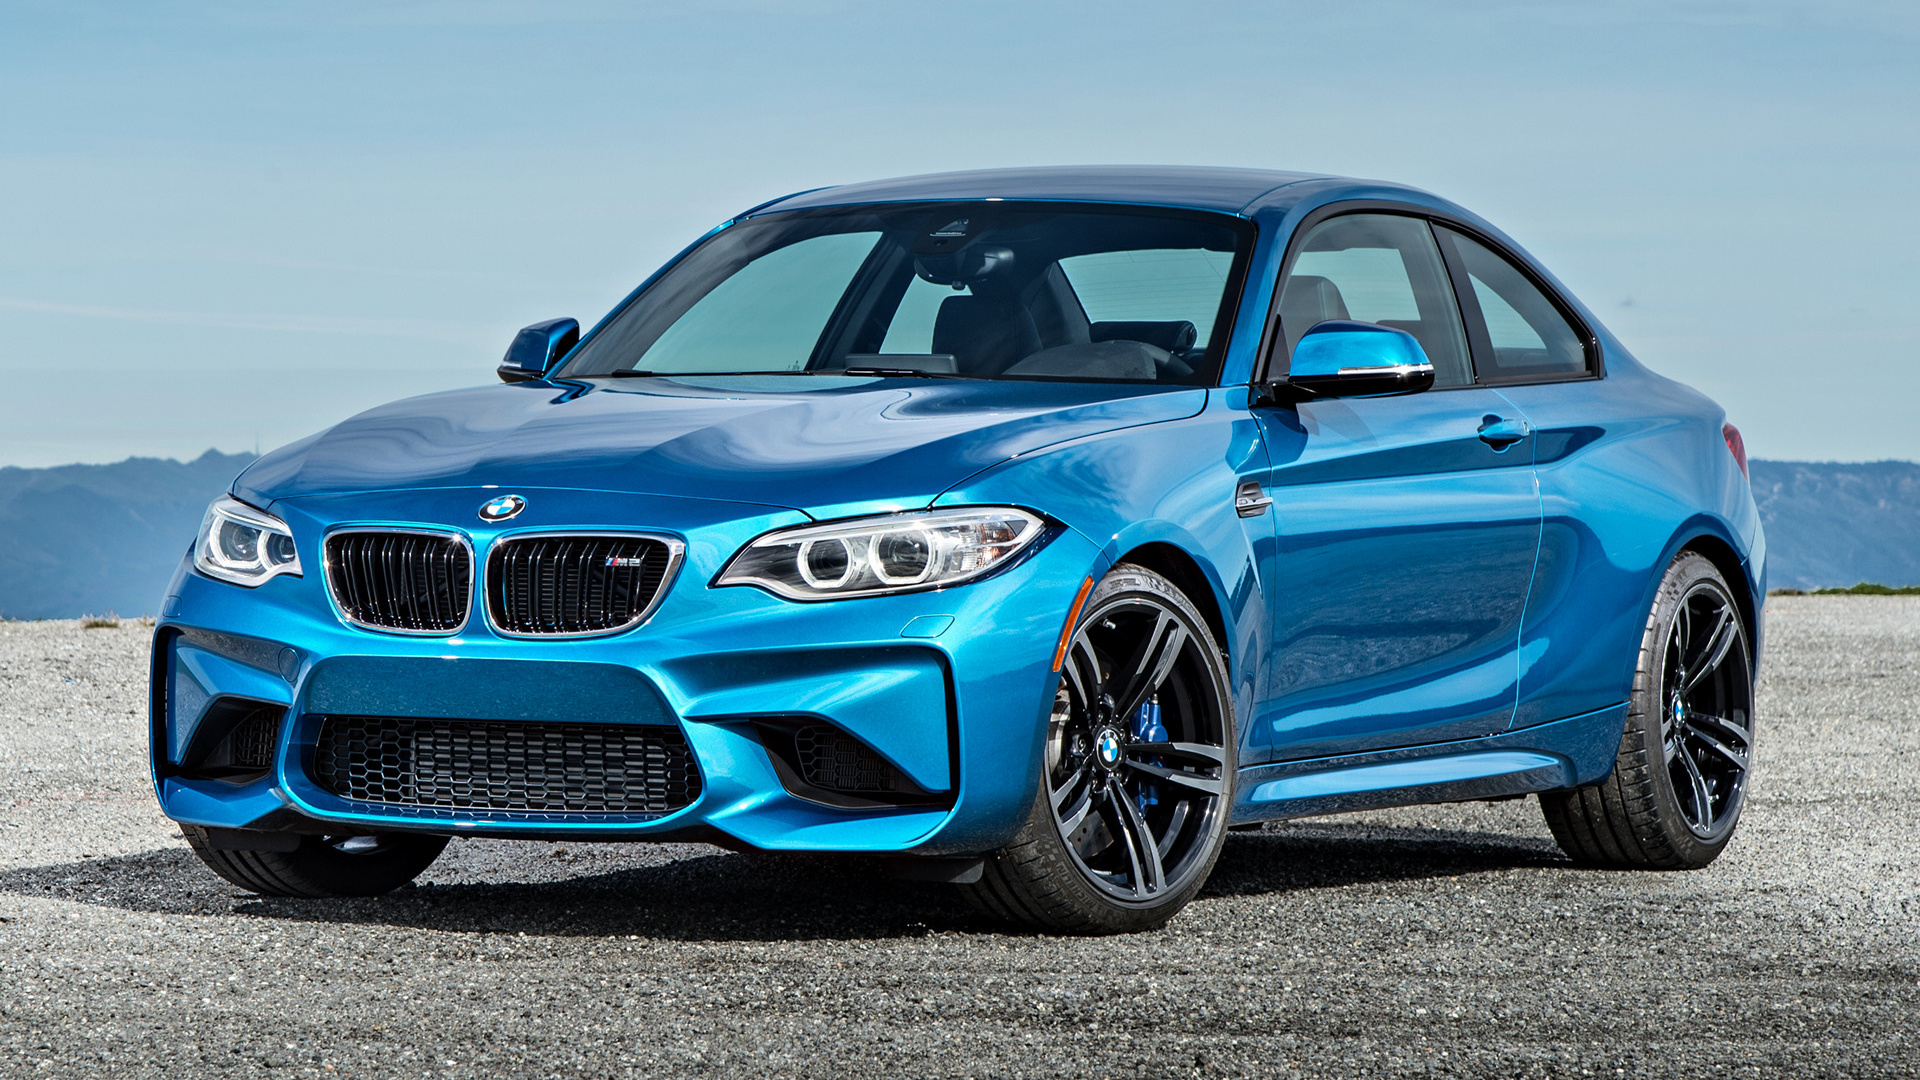 1920x1080 - BMW M2 Coupe Wallpapers 6